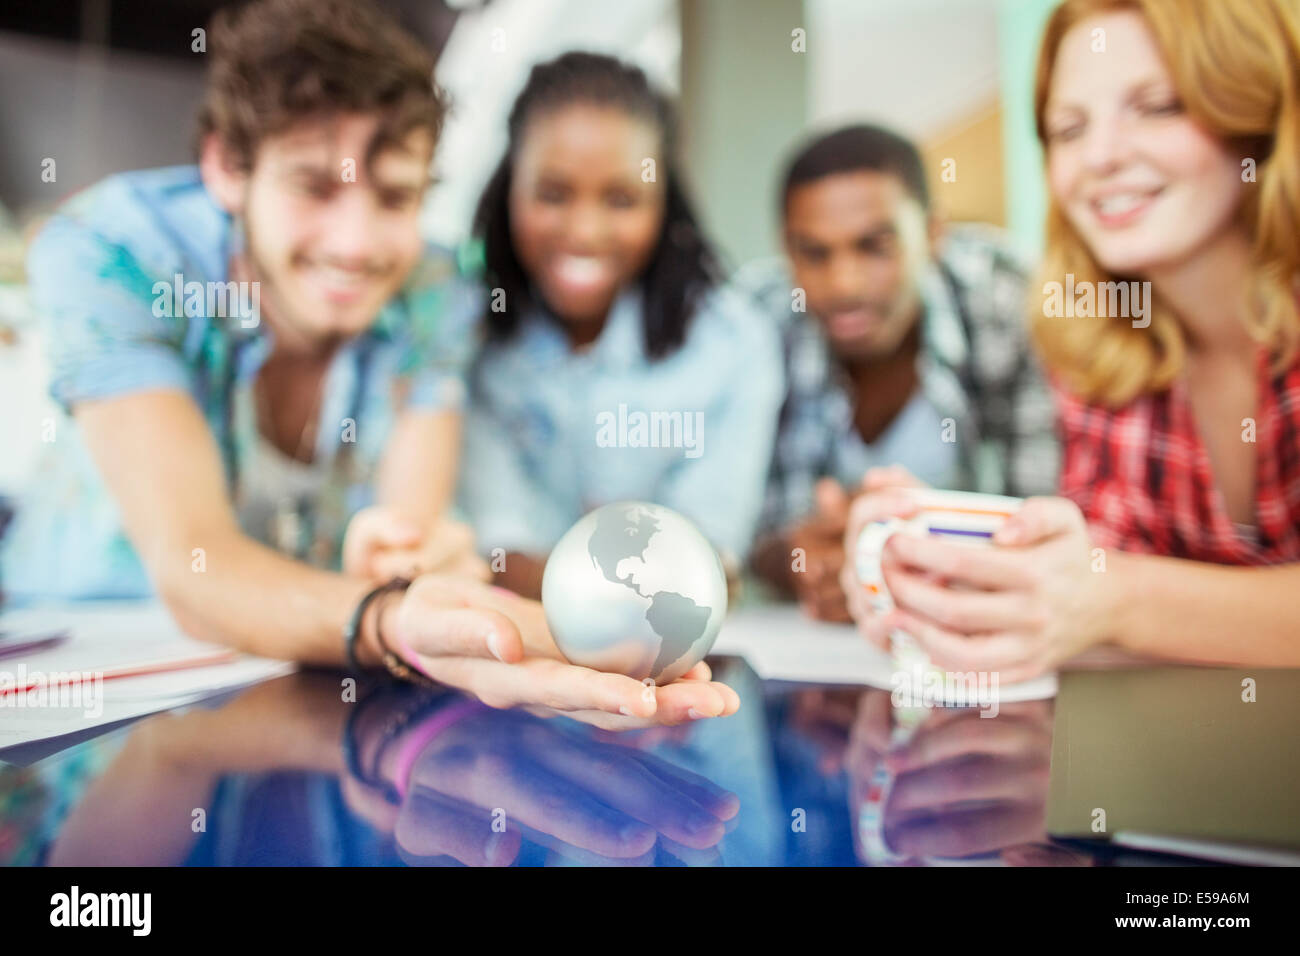 People examining globe in office - Stock Image